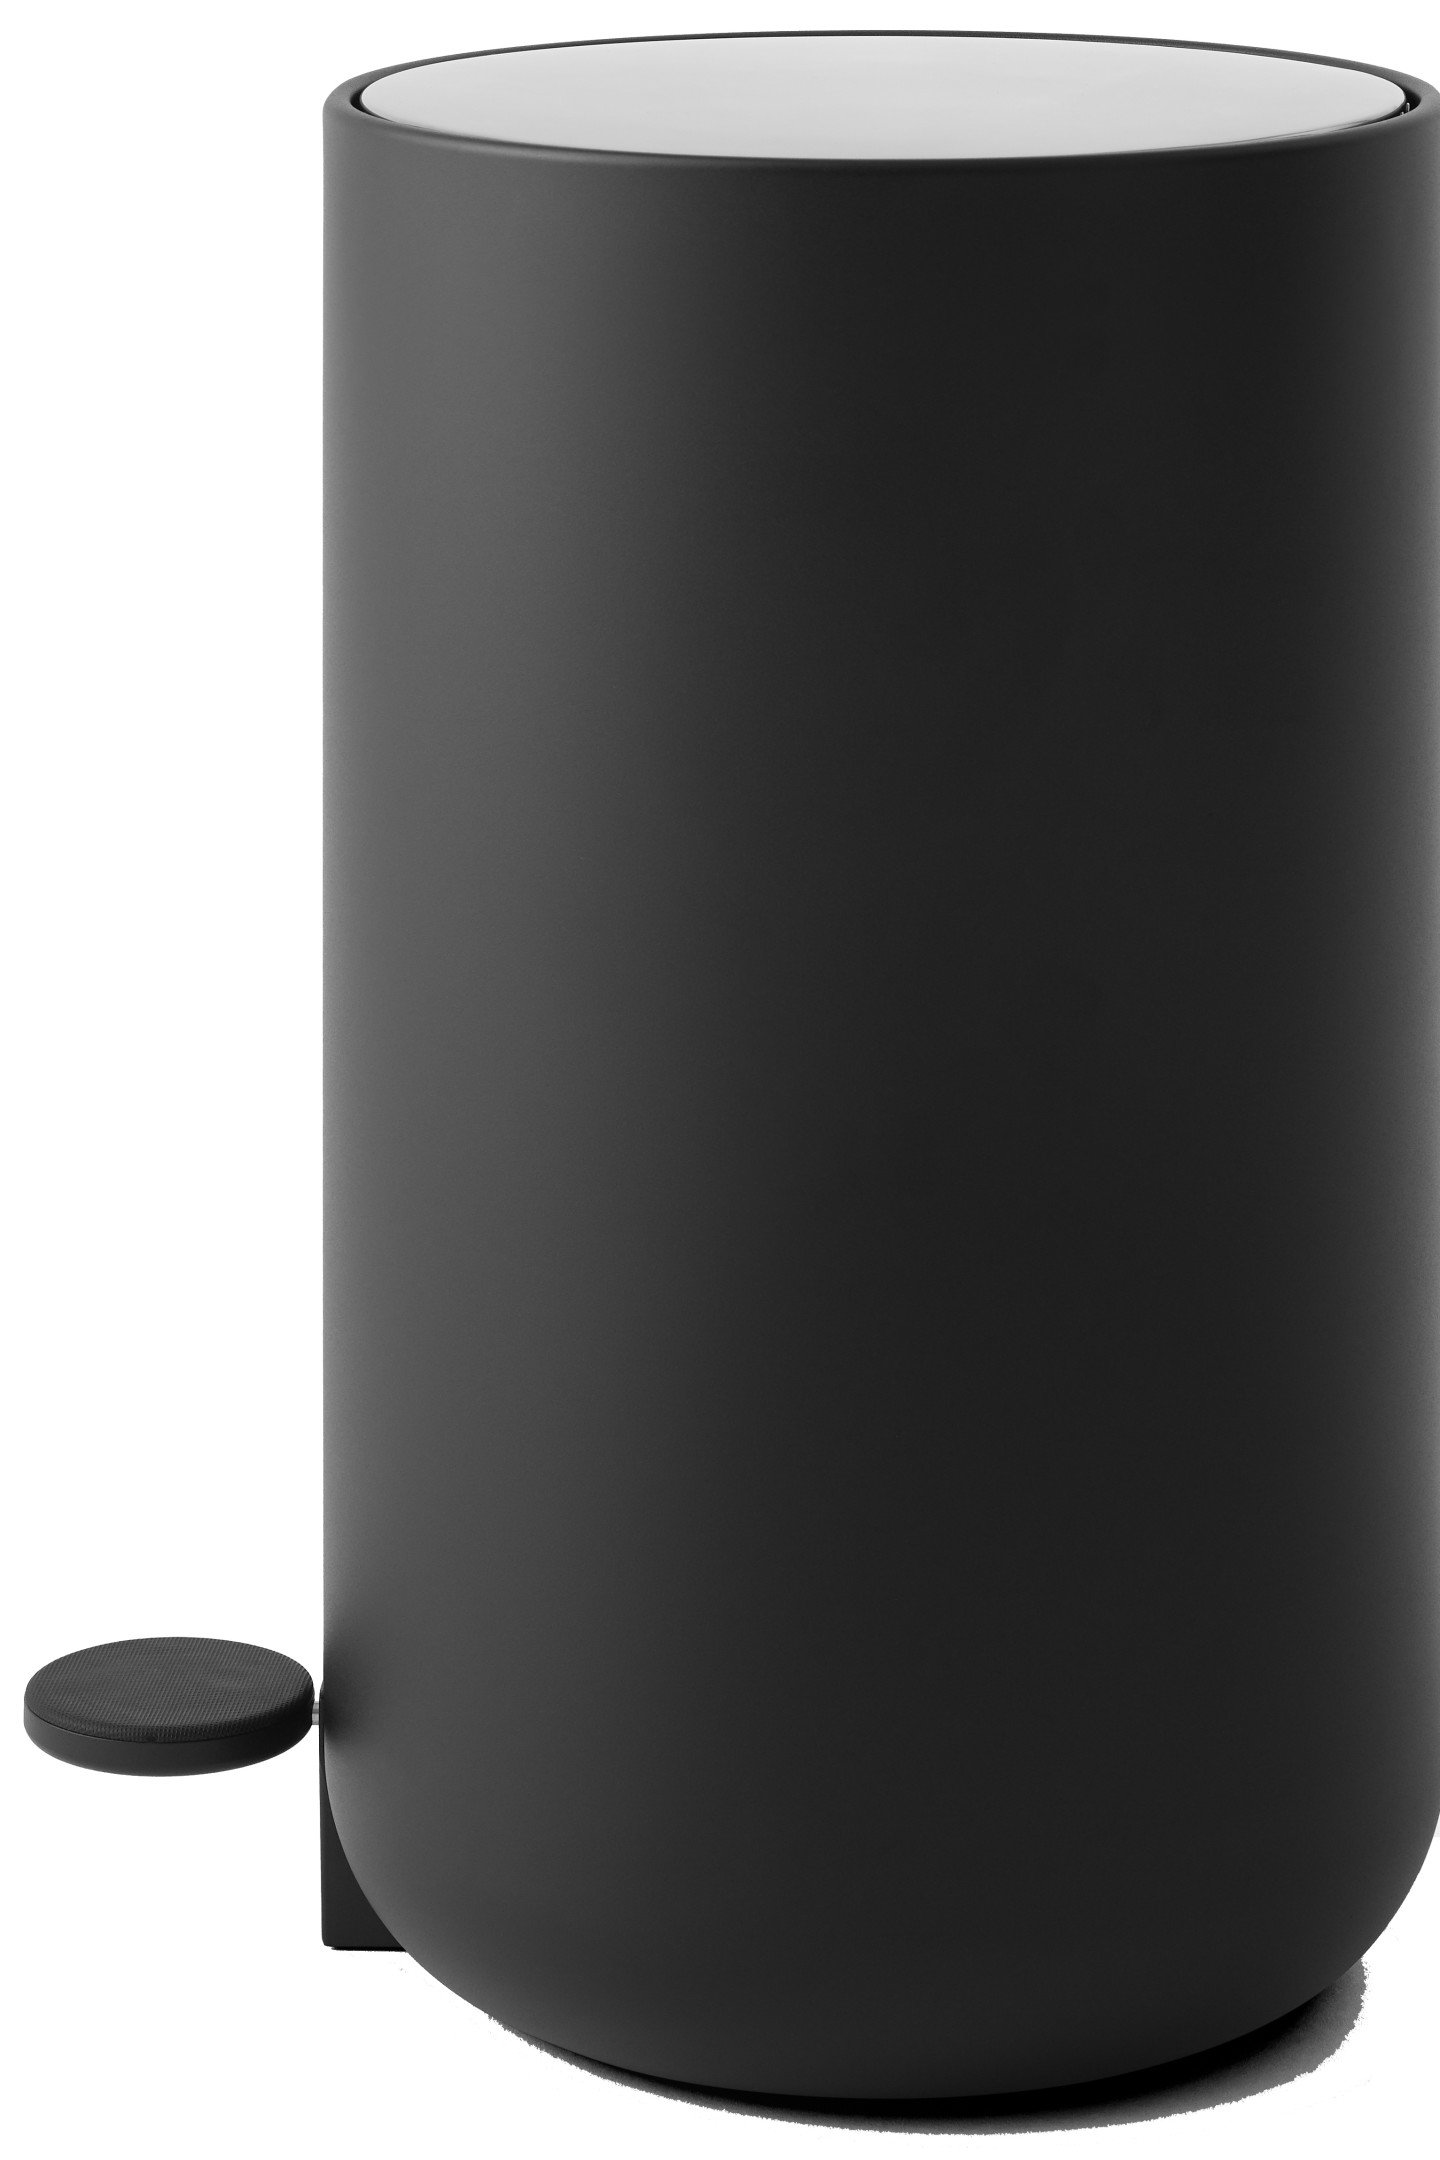 Pedal Bin 11l Black by Norm Architects for Menu